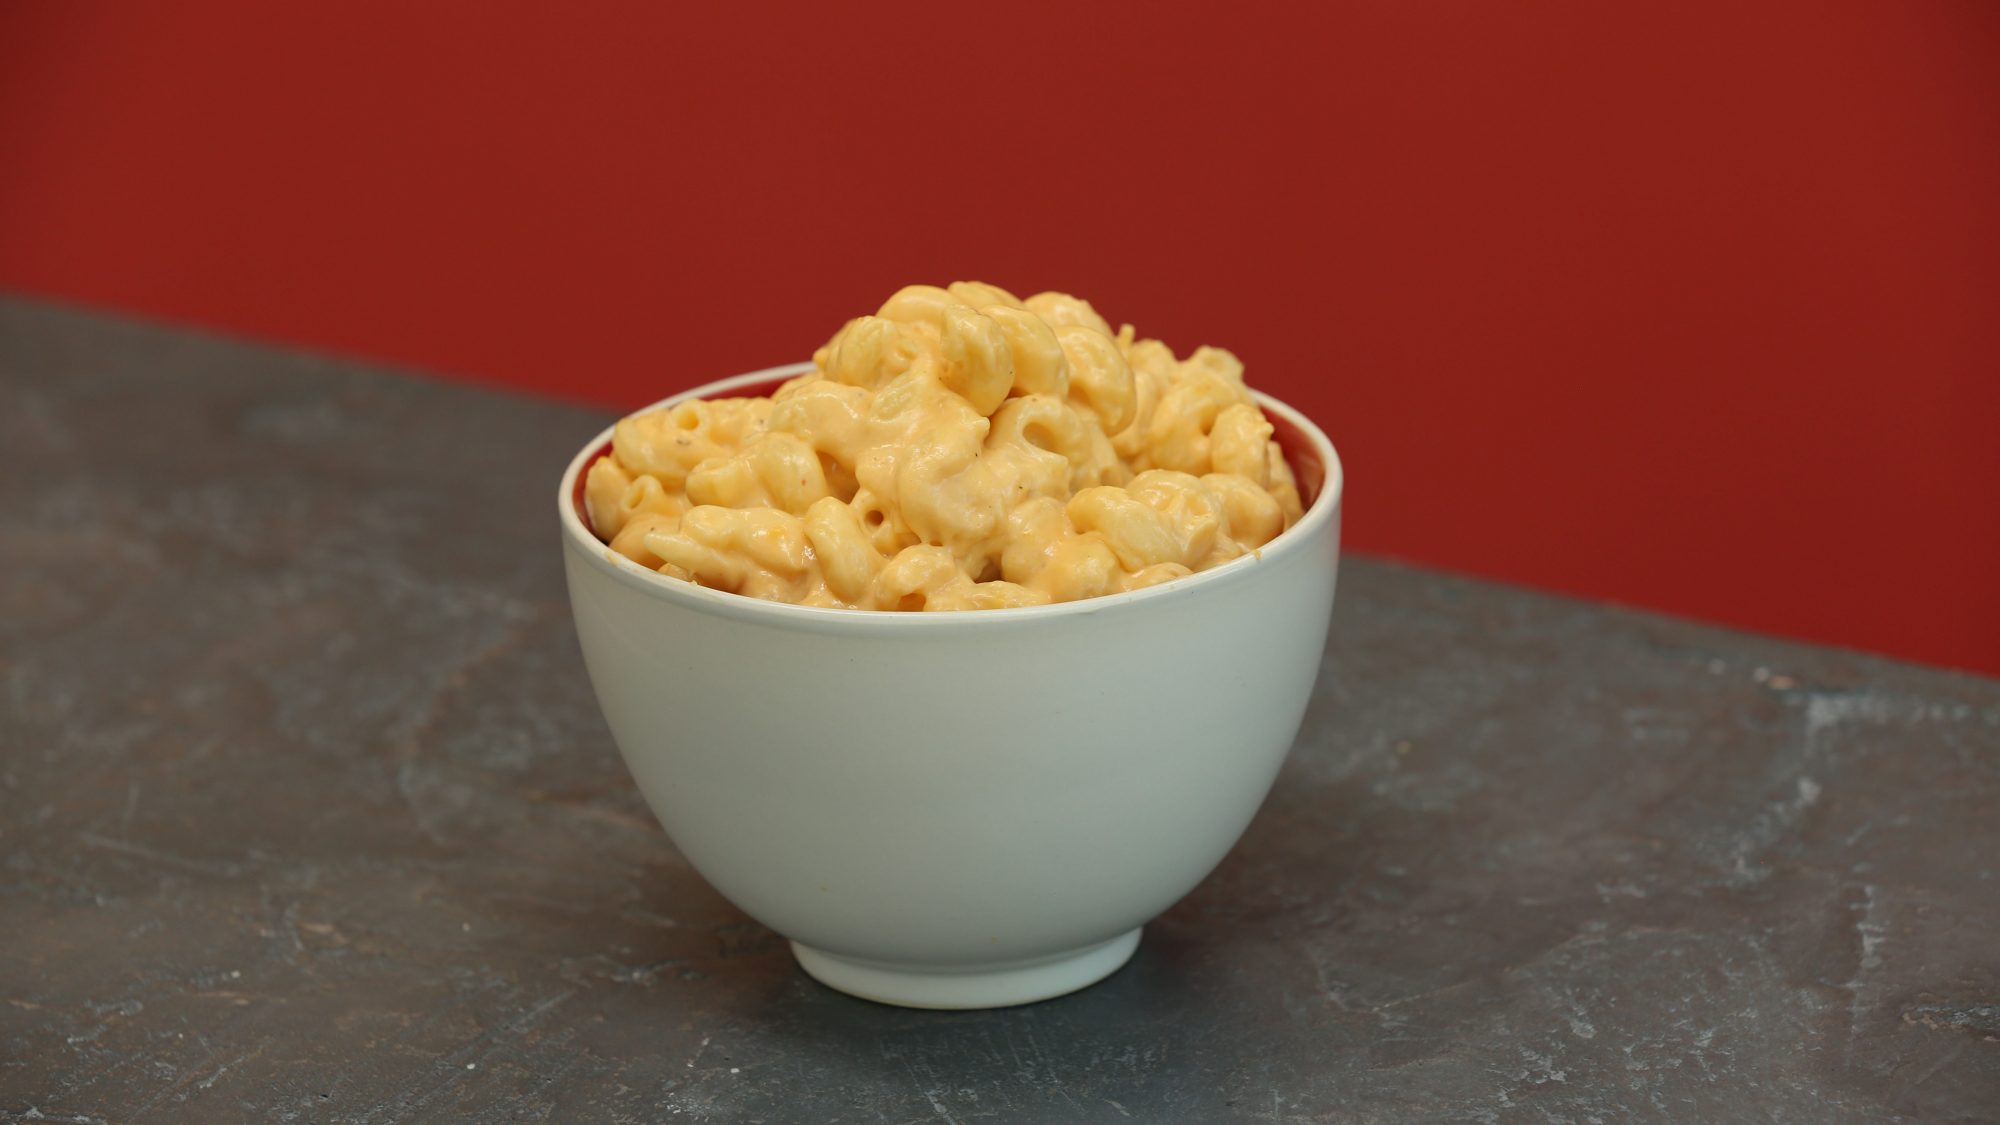 Creamy Stovetop Mac and Cheese image